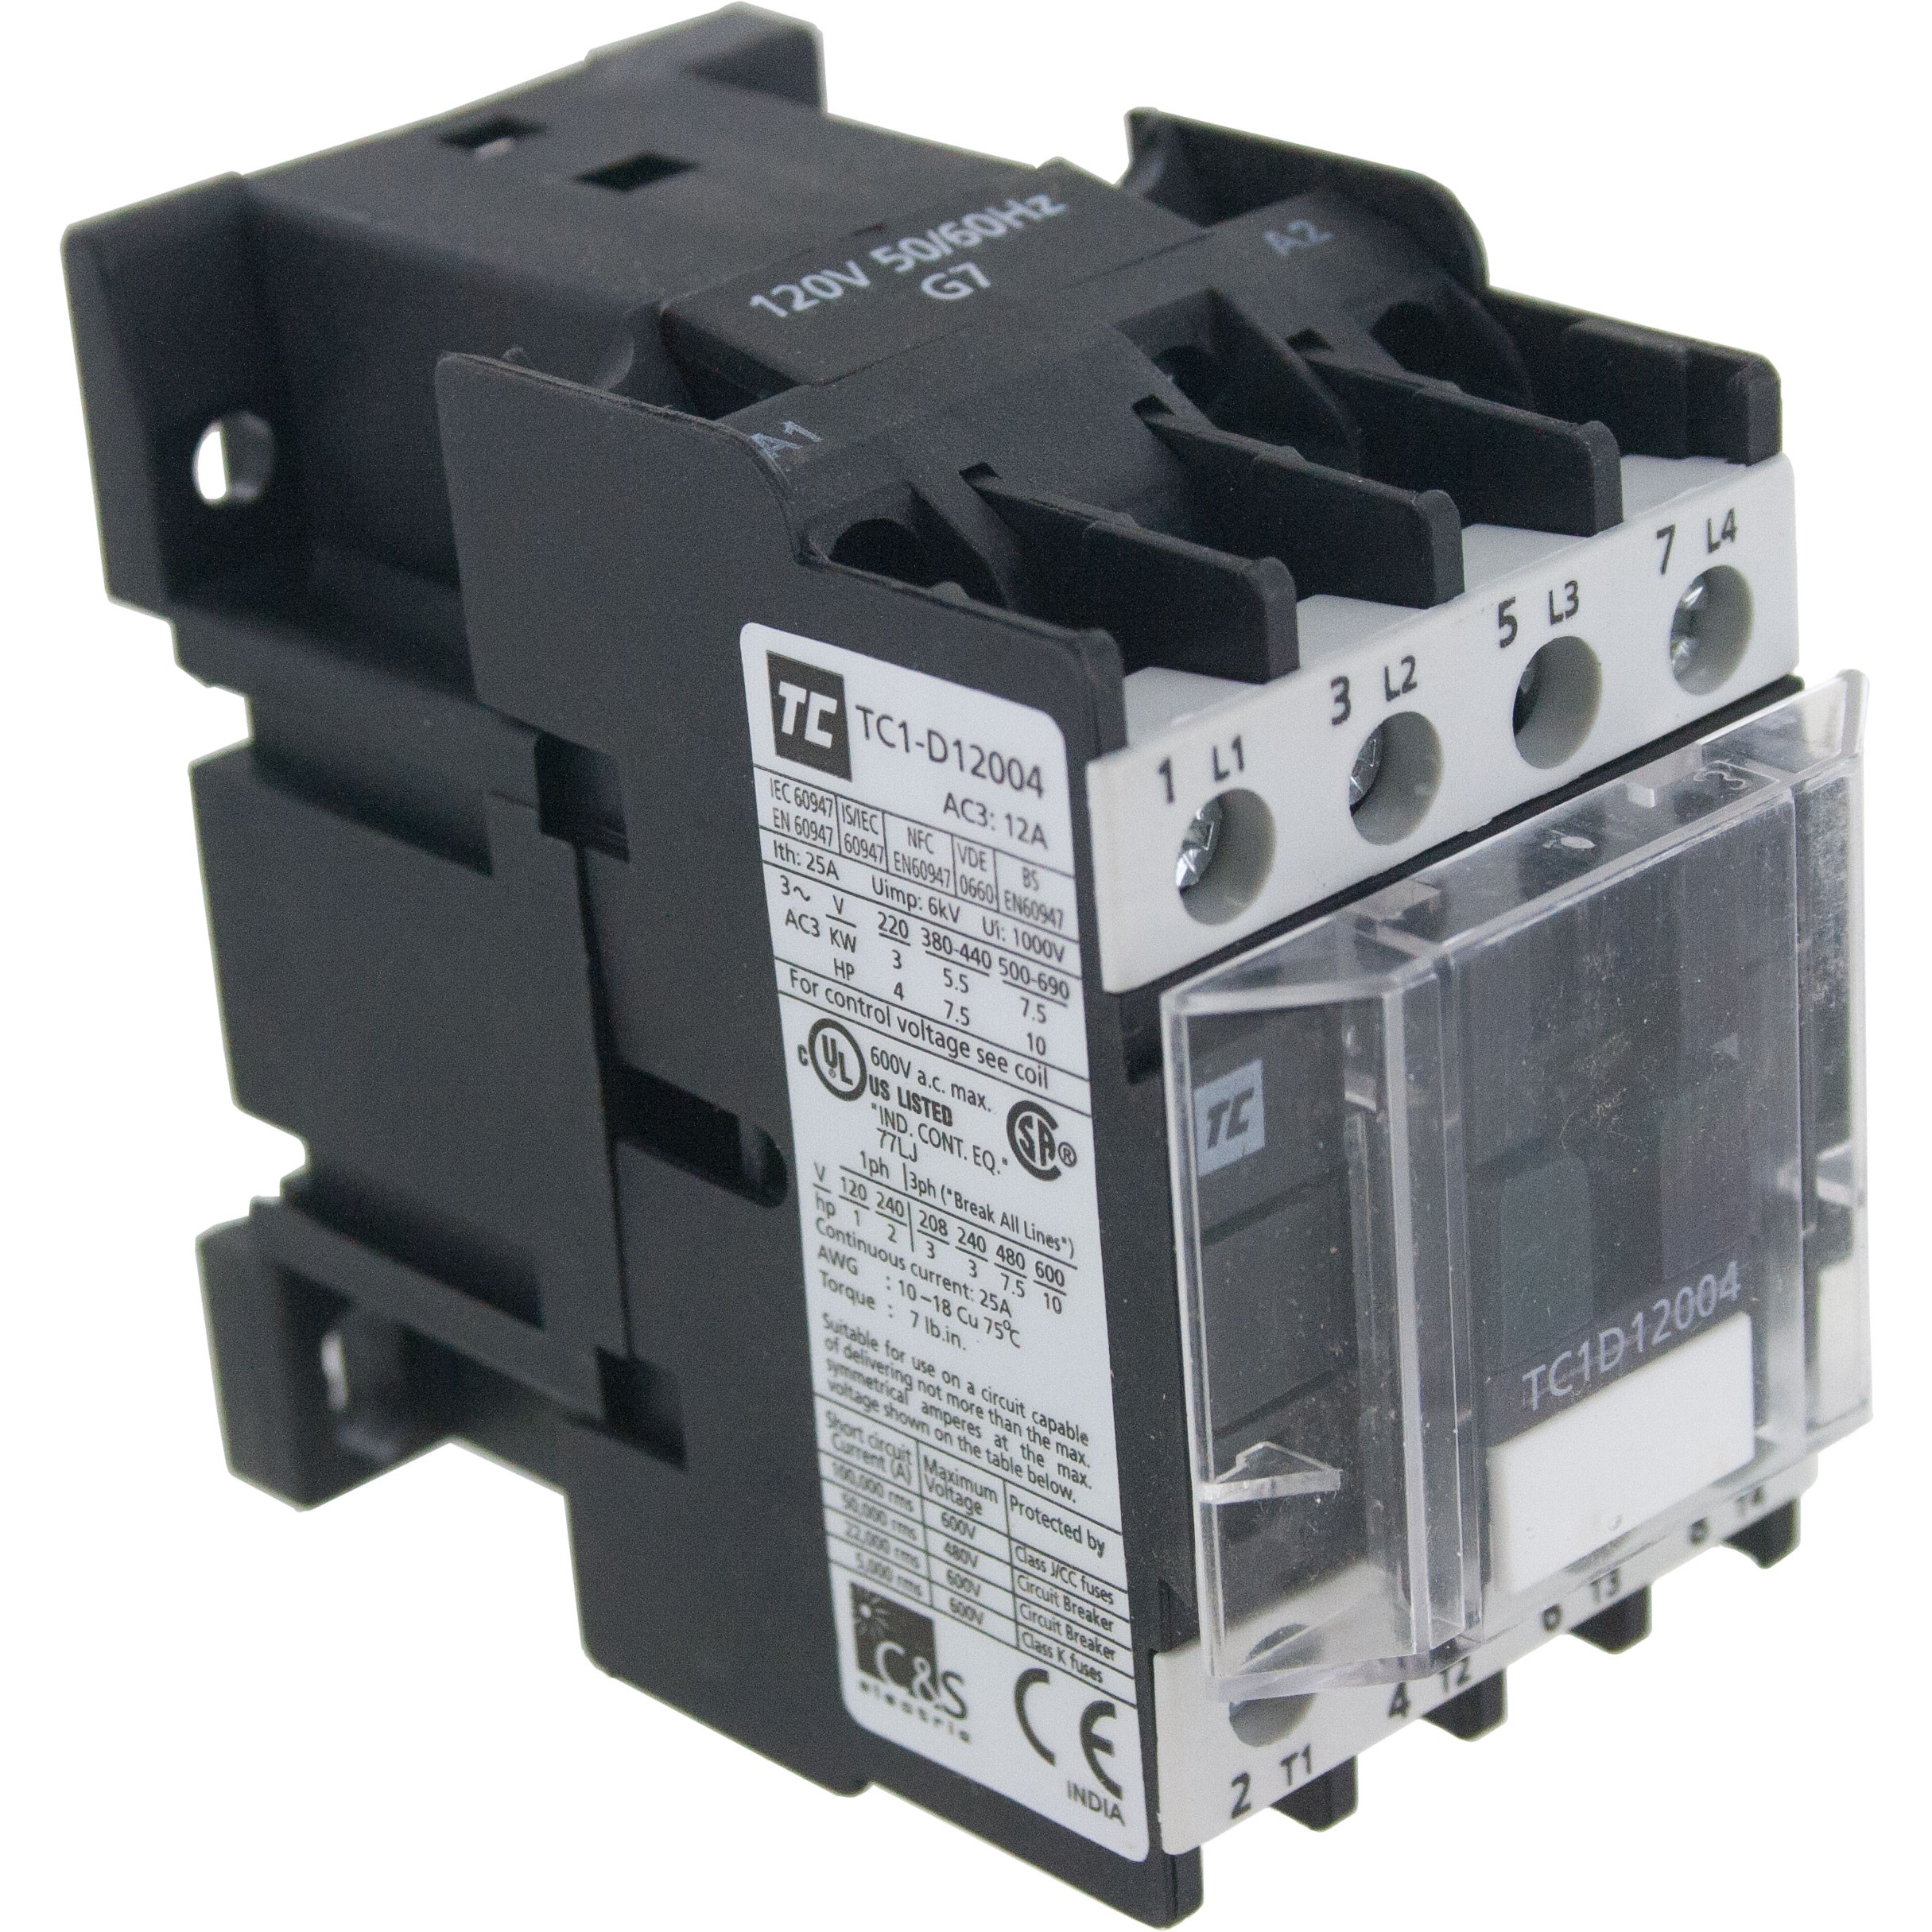 4 Pole Contactor 12 Amp 2 N/O - 2 N/C 24 Volt AC Coil Angle